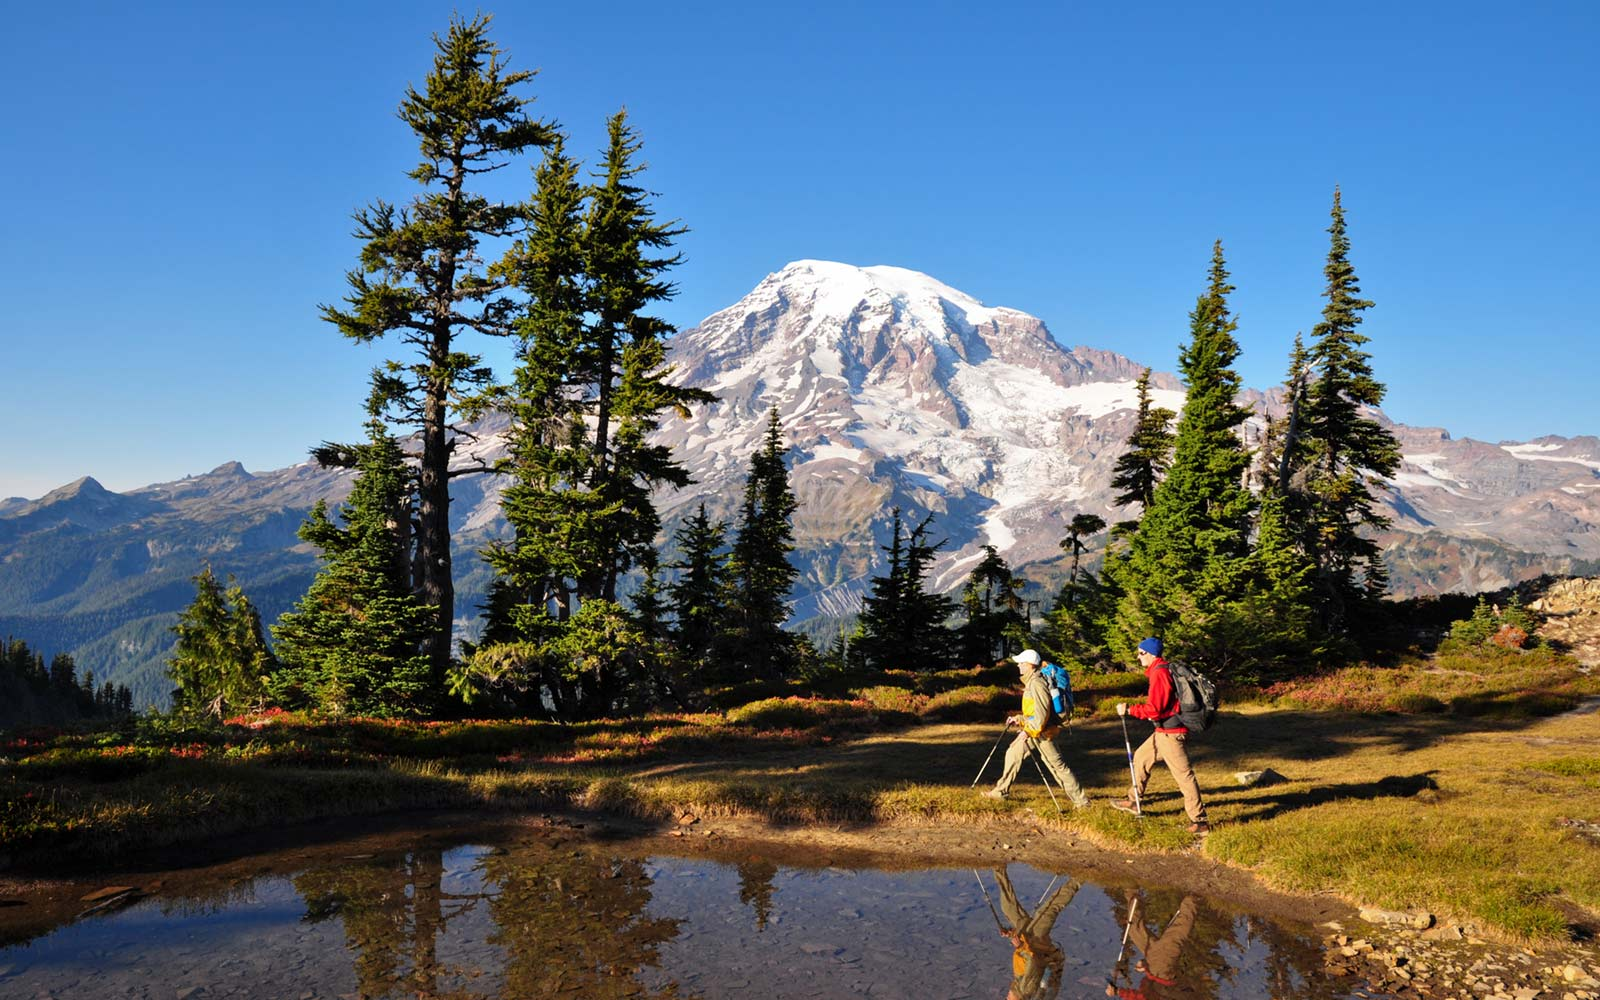 What to Do at Mount Rainier National Park